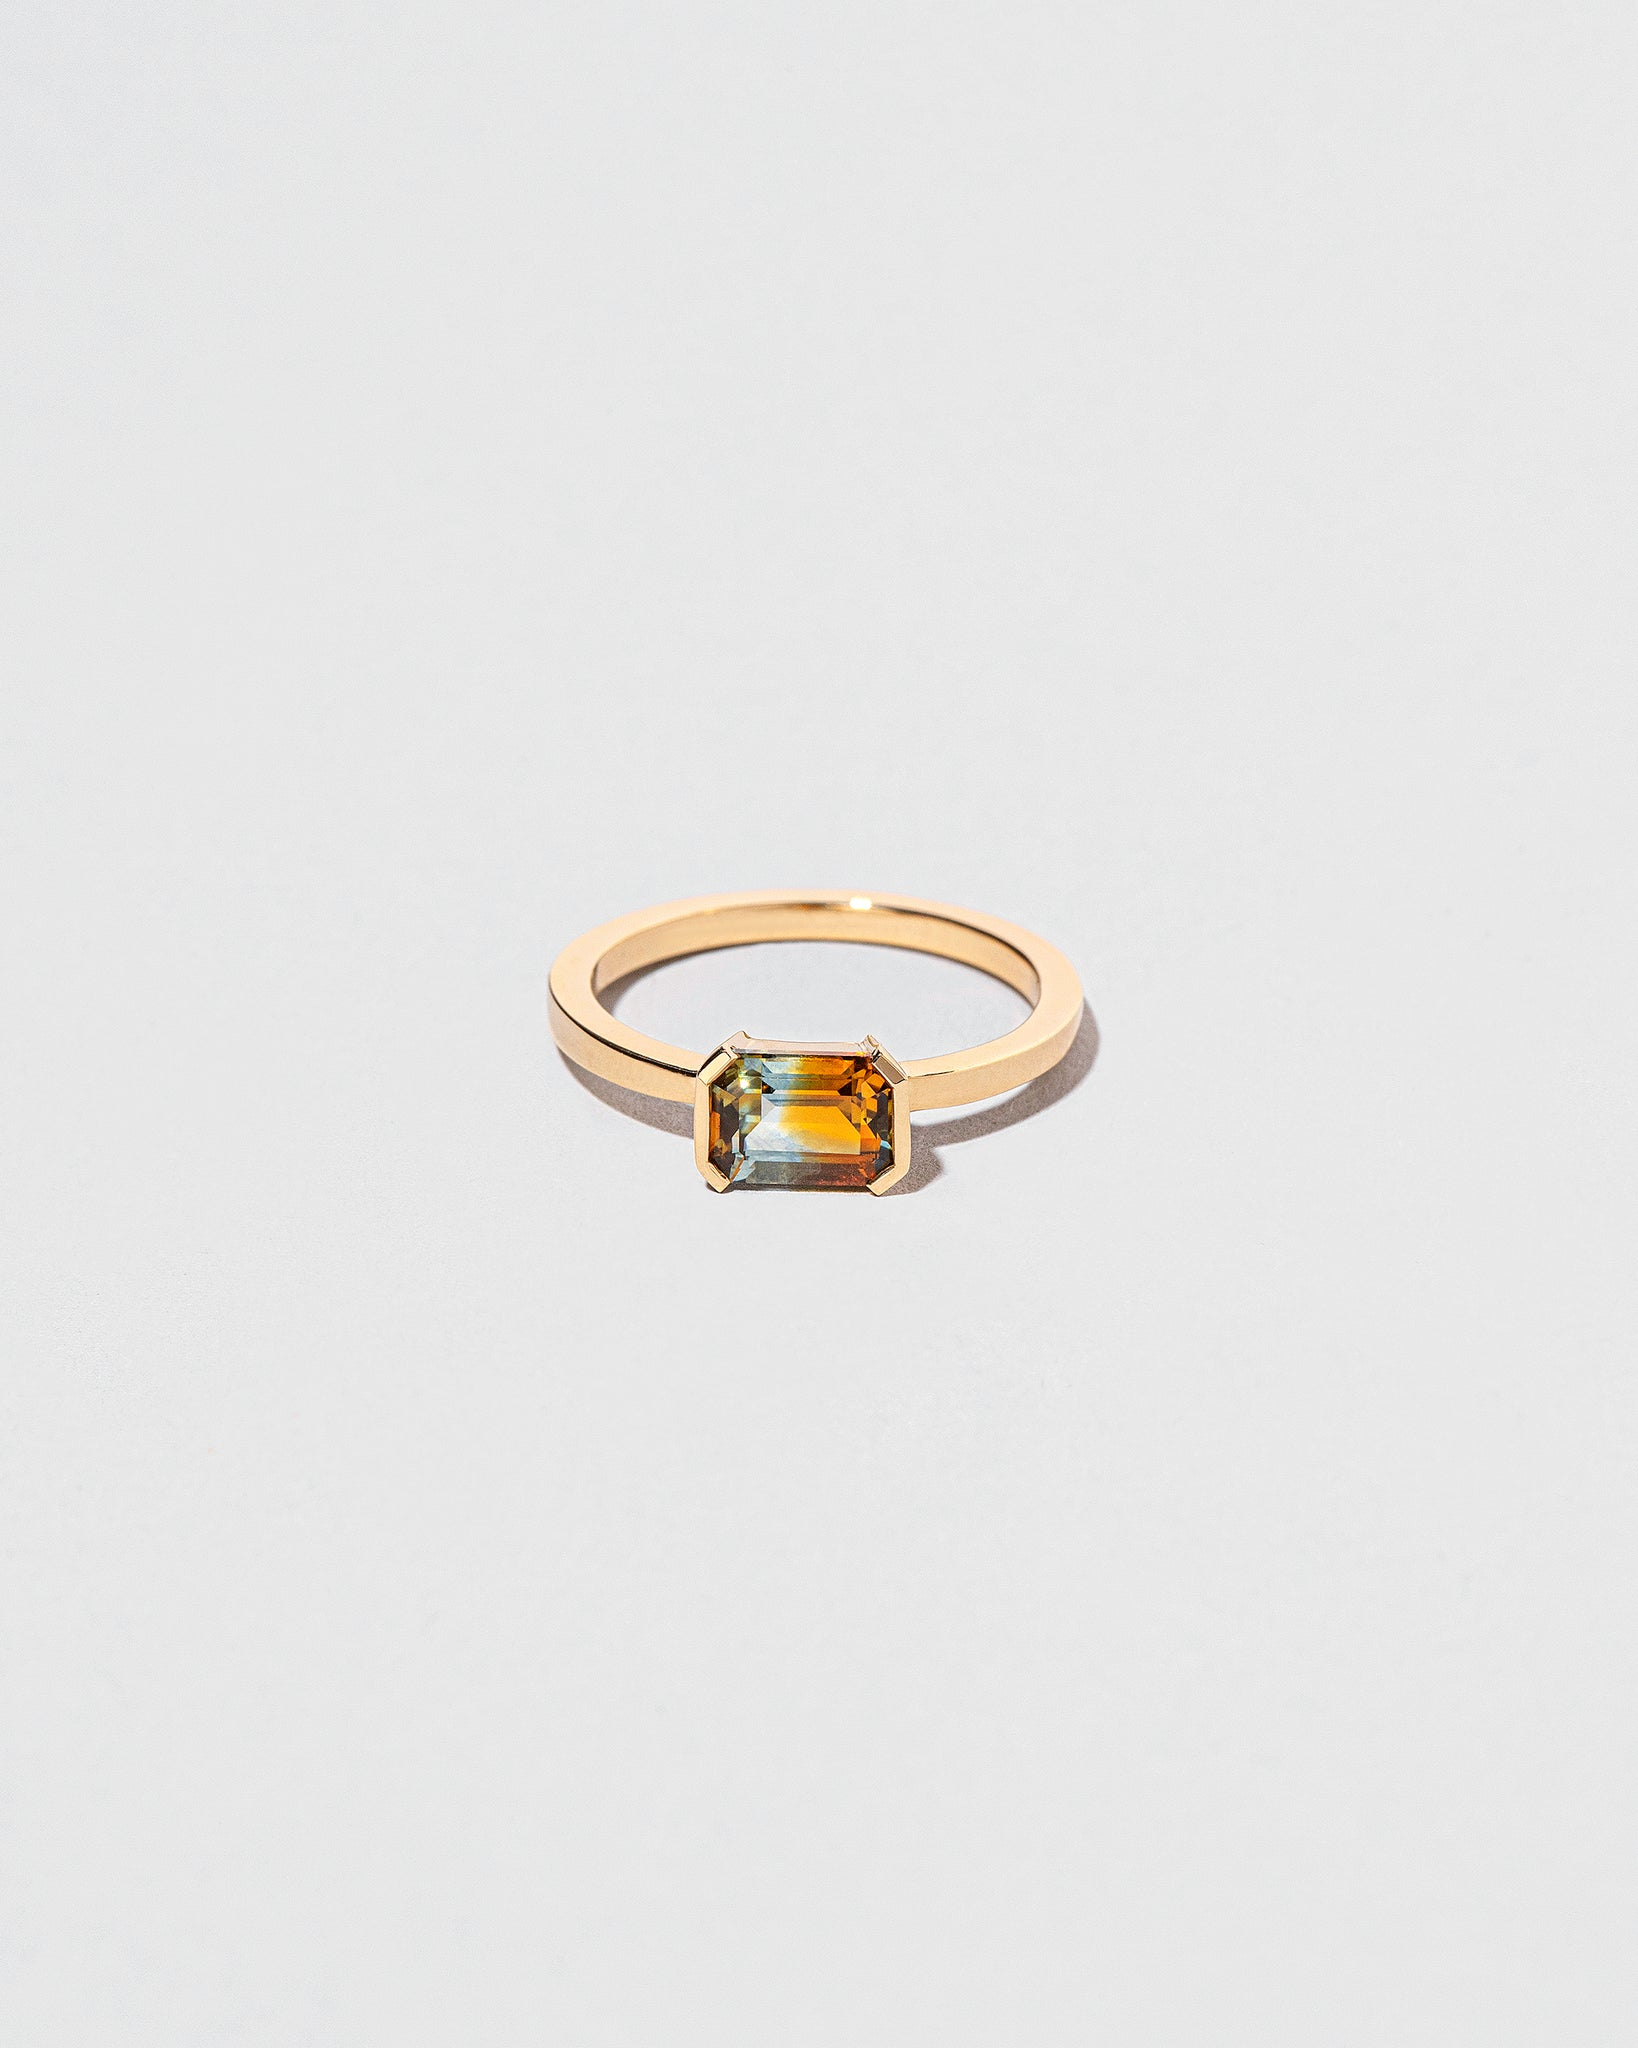 Elowan Ring front facing